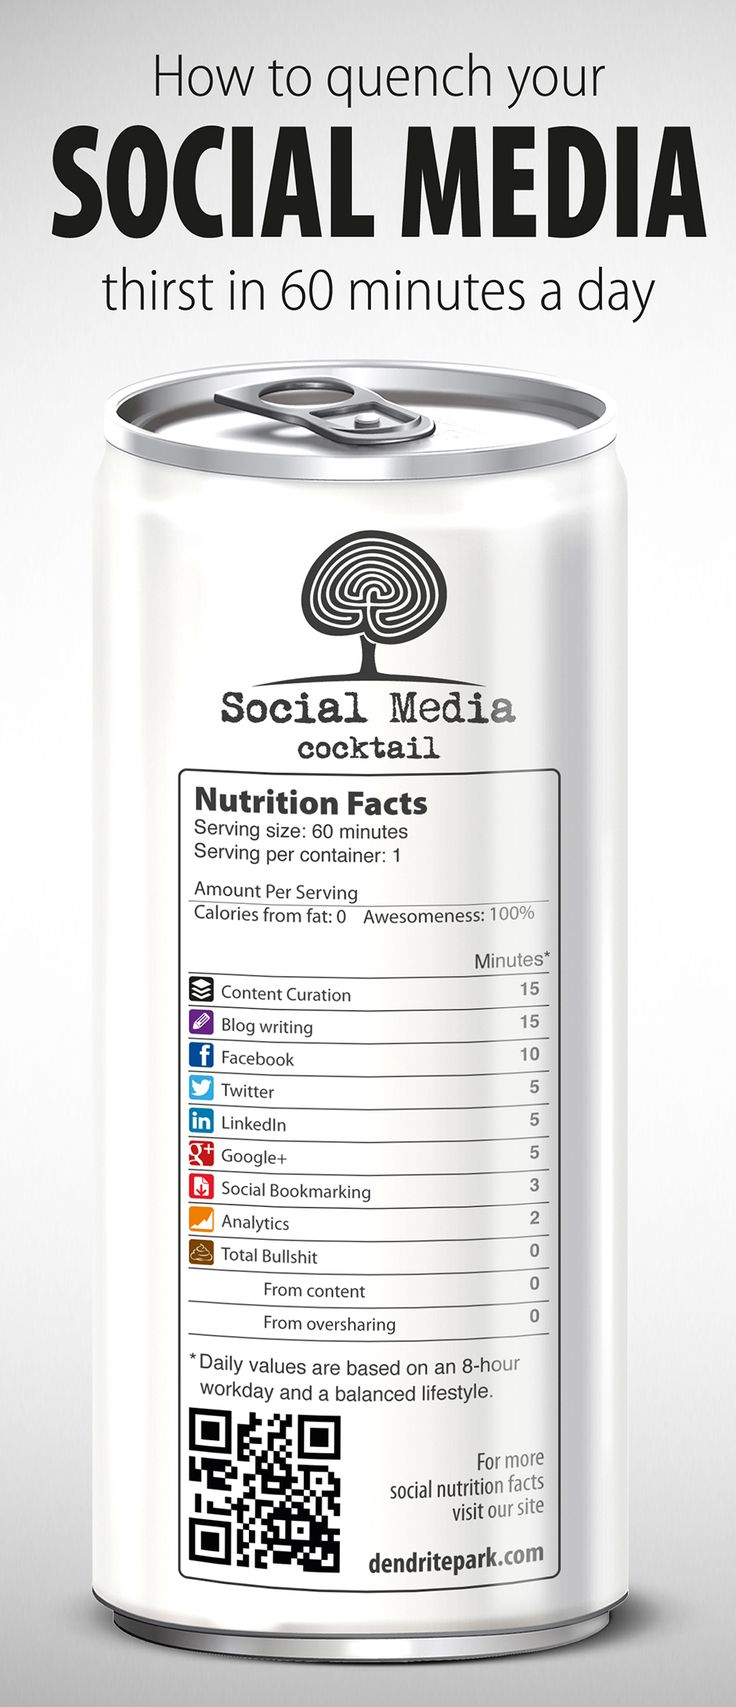 Social Media Cocktail